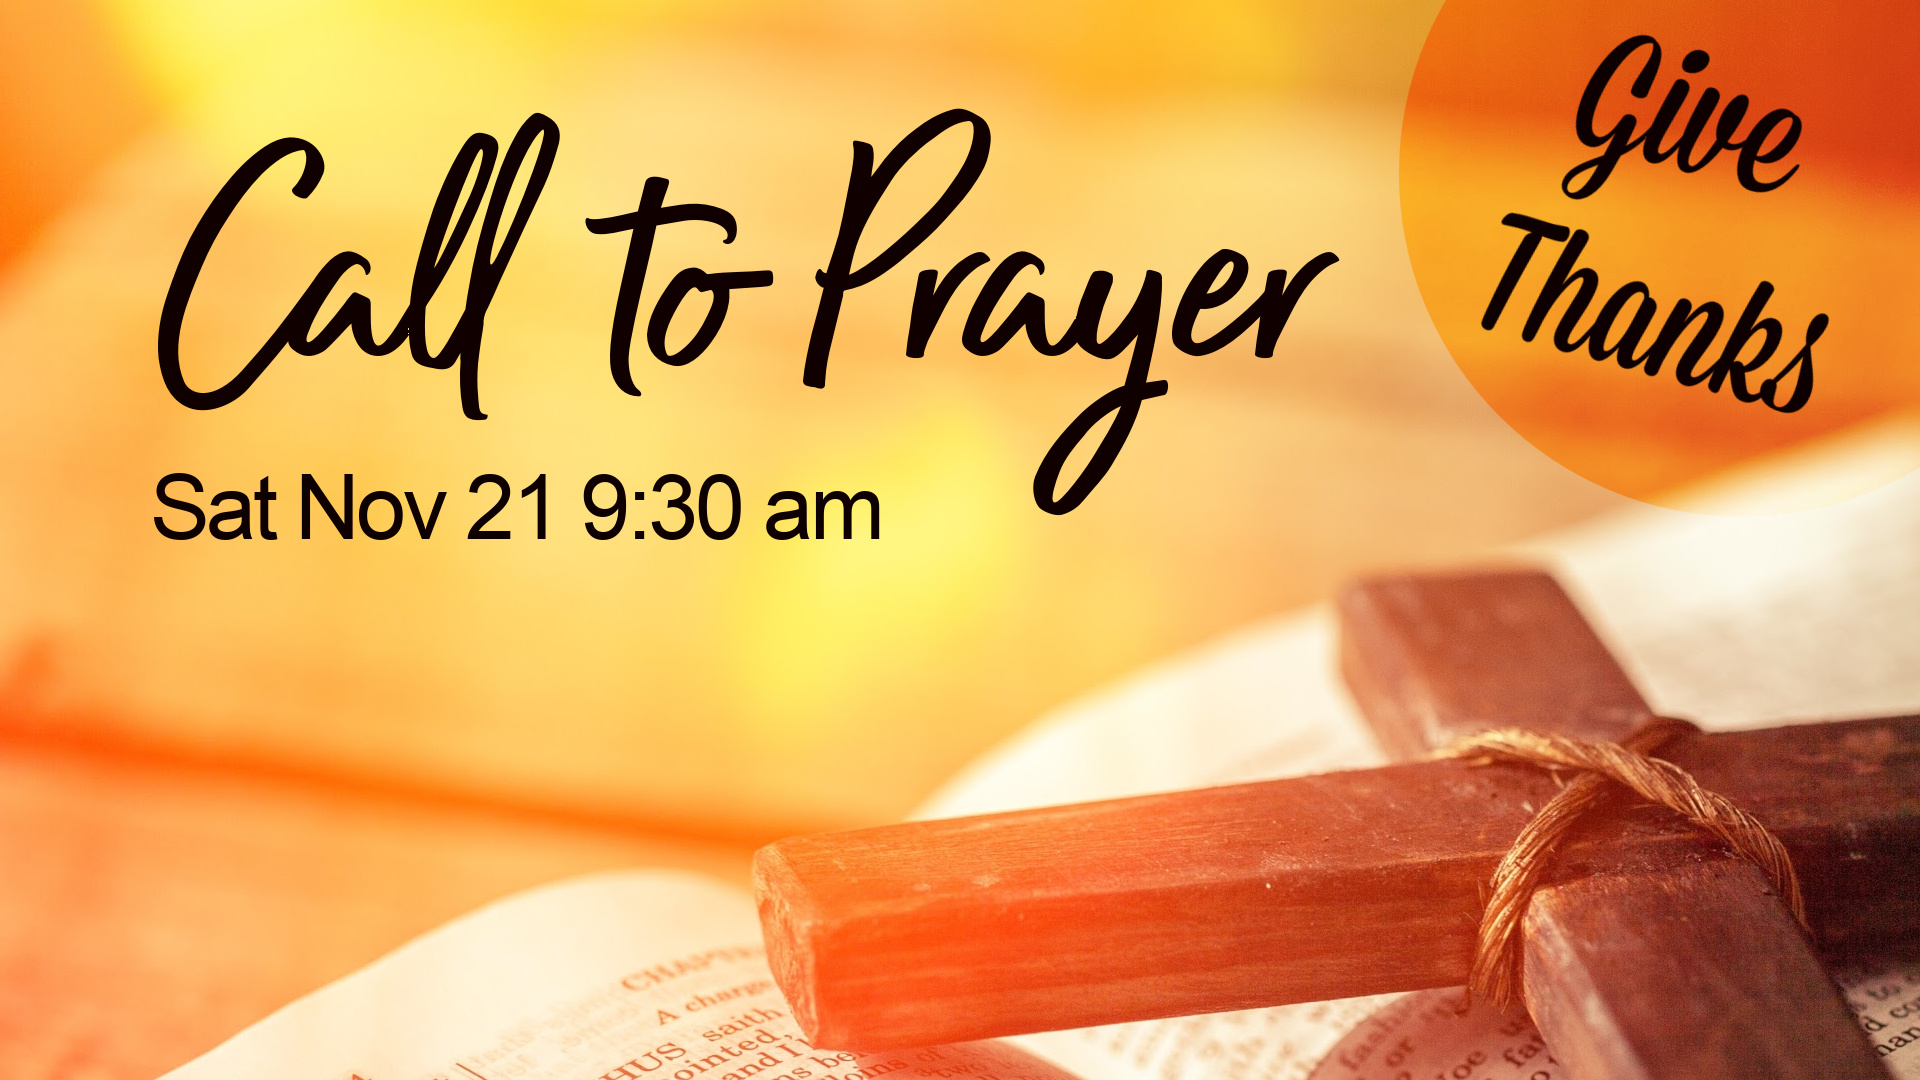 Call to Prayer Nov 21 date only 1920 x 1080 copy image